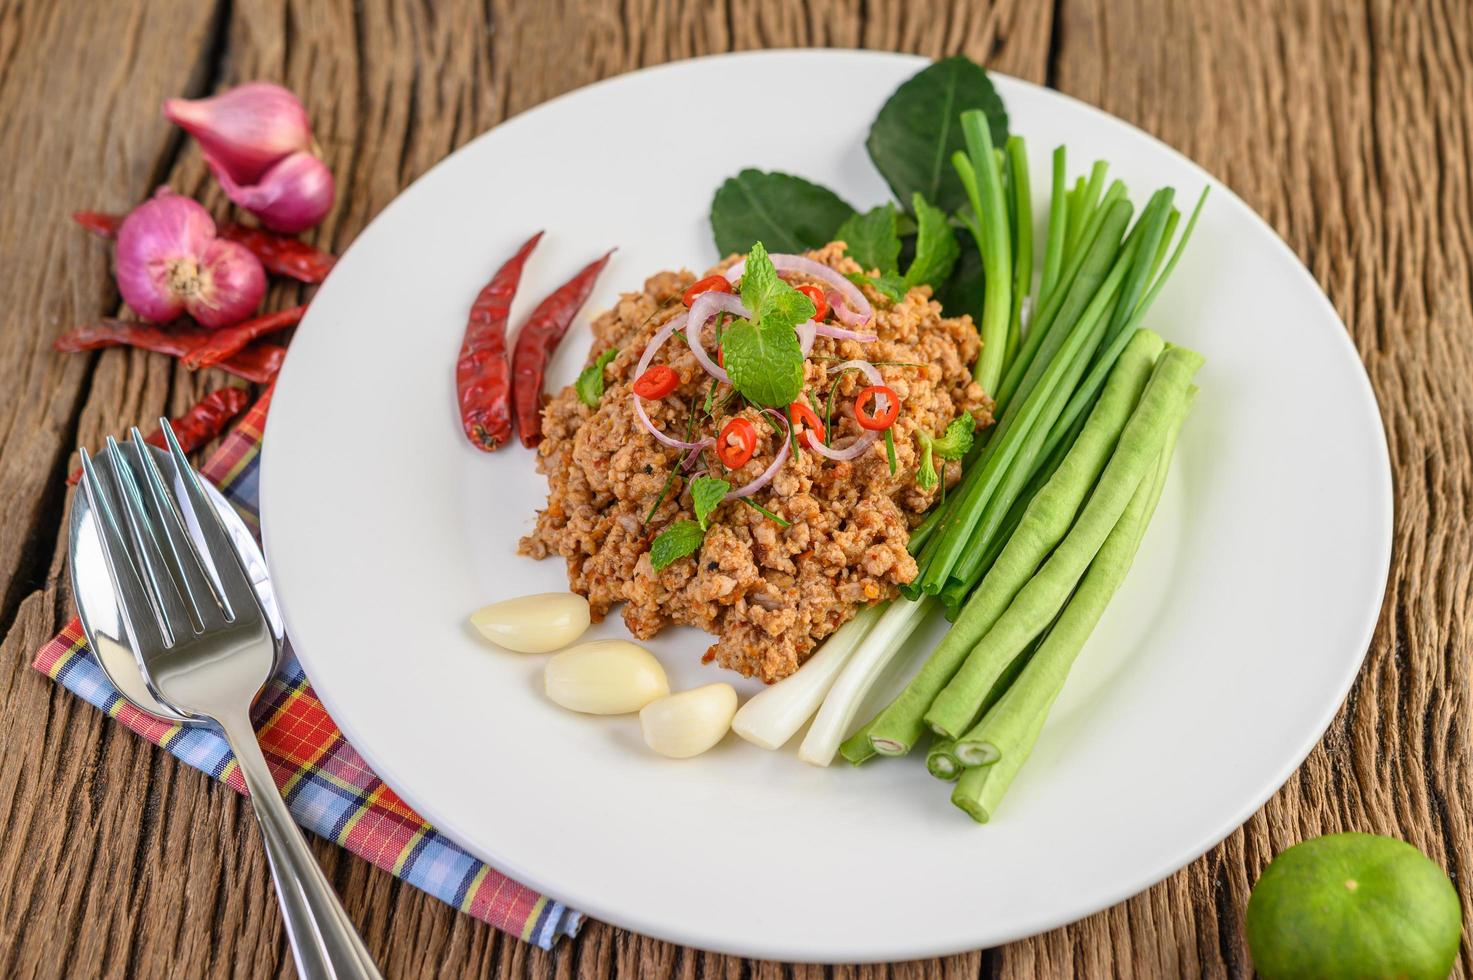 Spicy minced pork salad on green vegetables photo